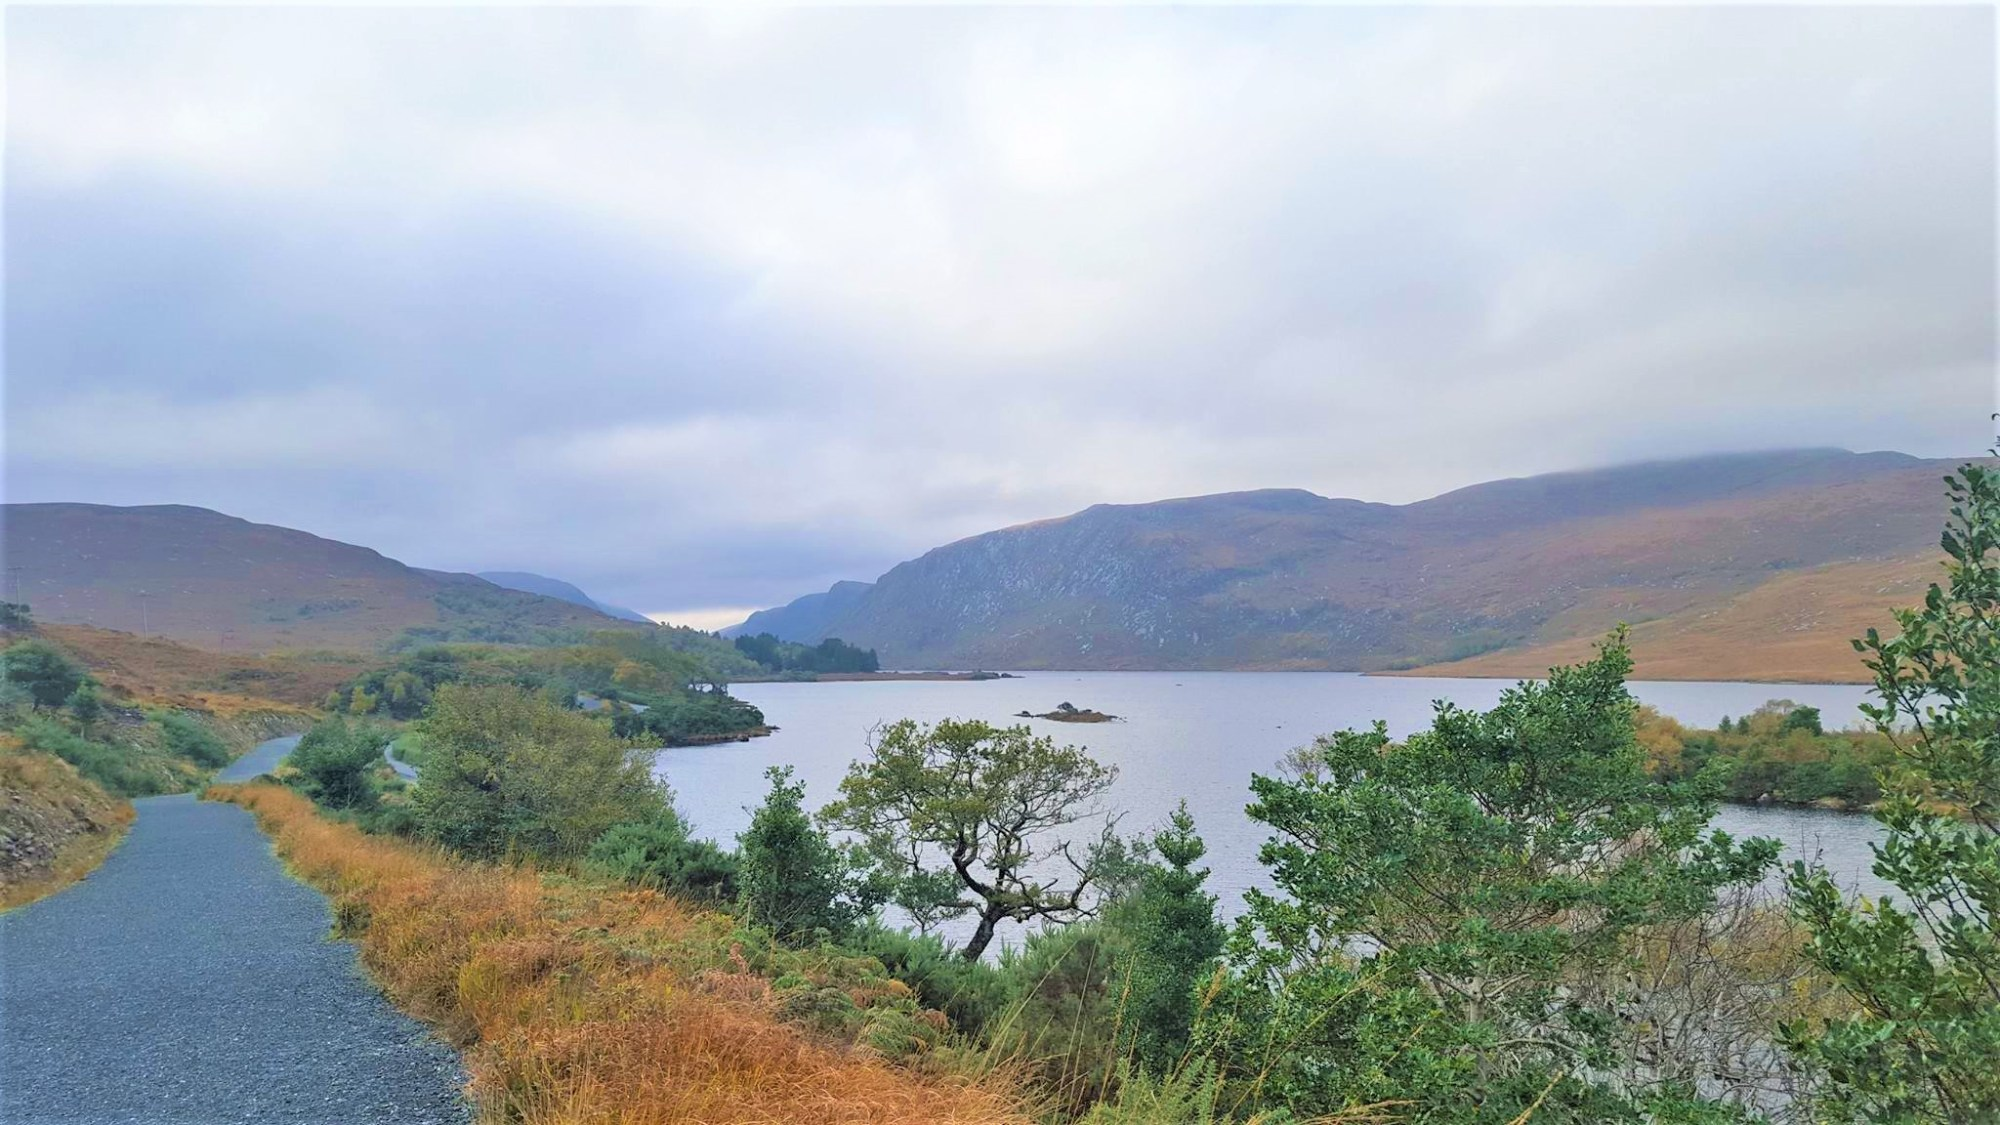 GLENVEAGH national park Irlande Donegal